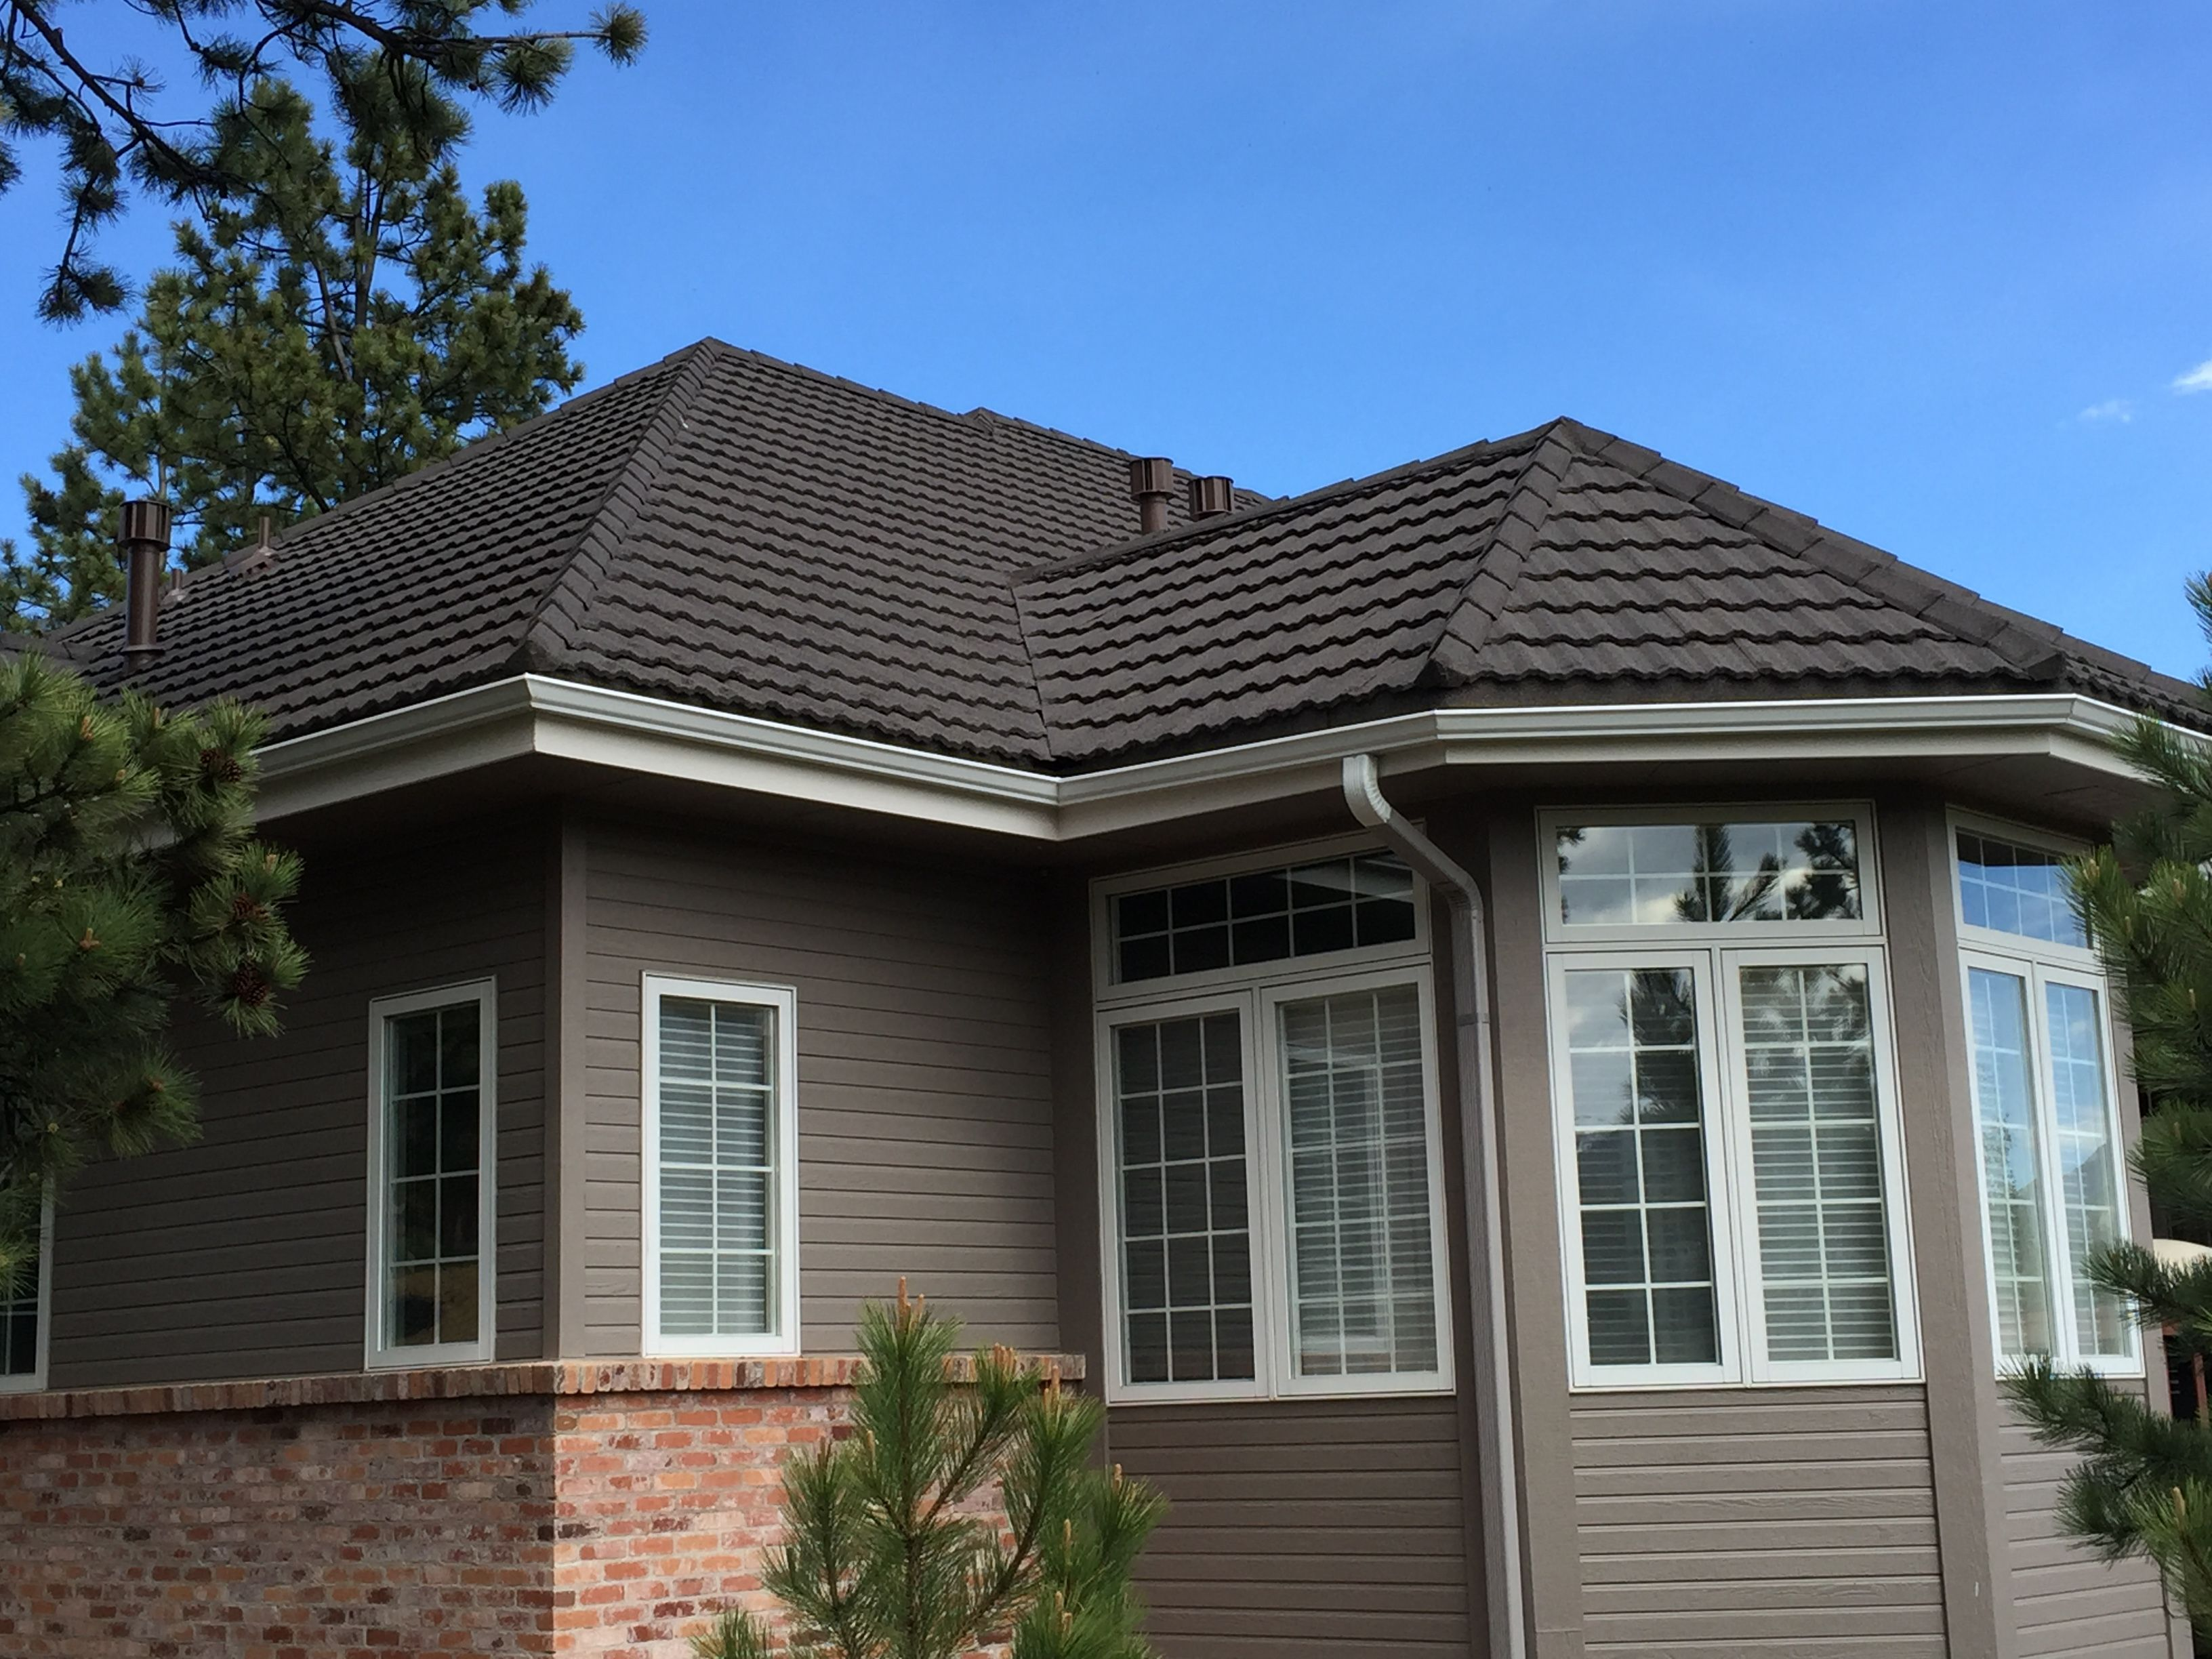 Stile Roofing Amp We Like This Roofing For The House But